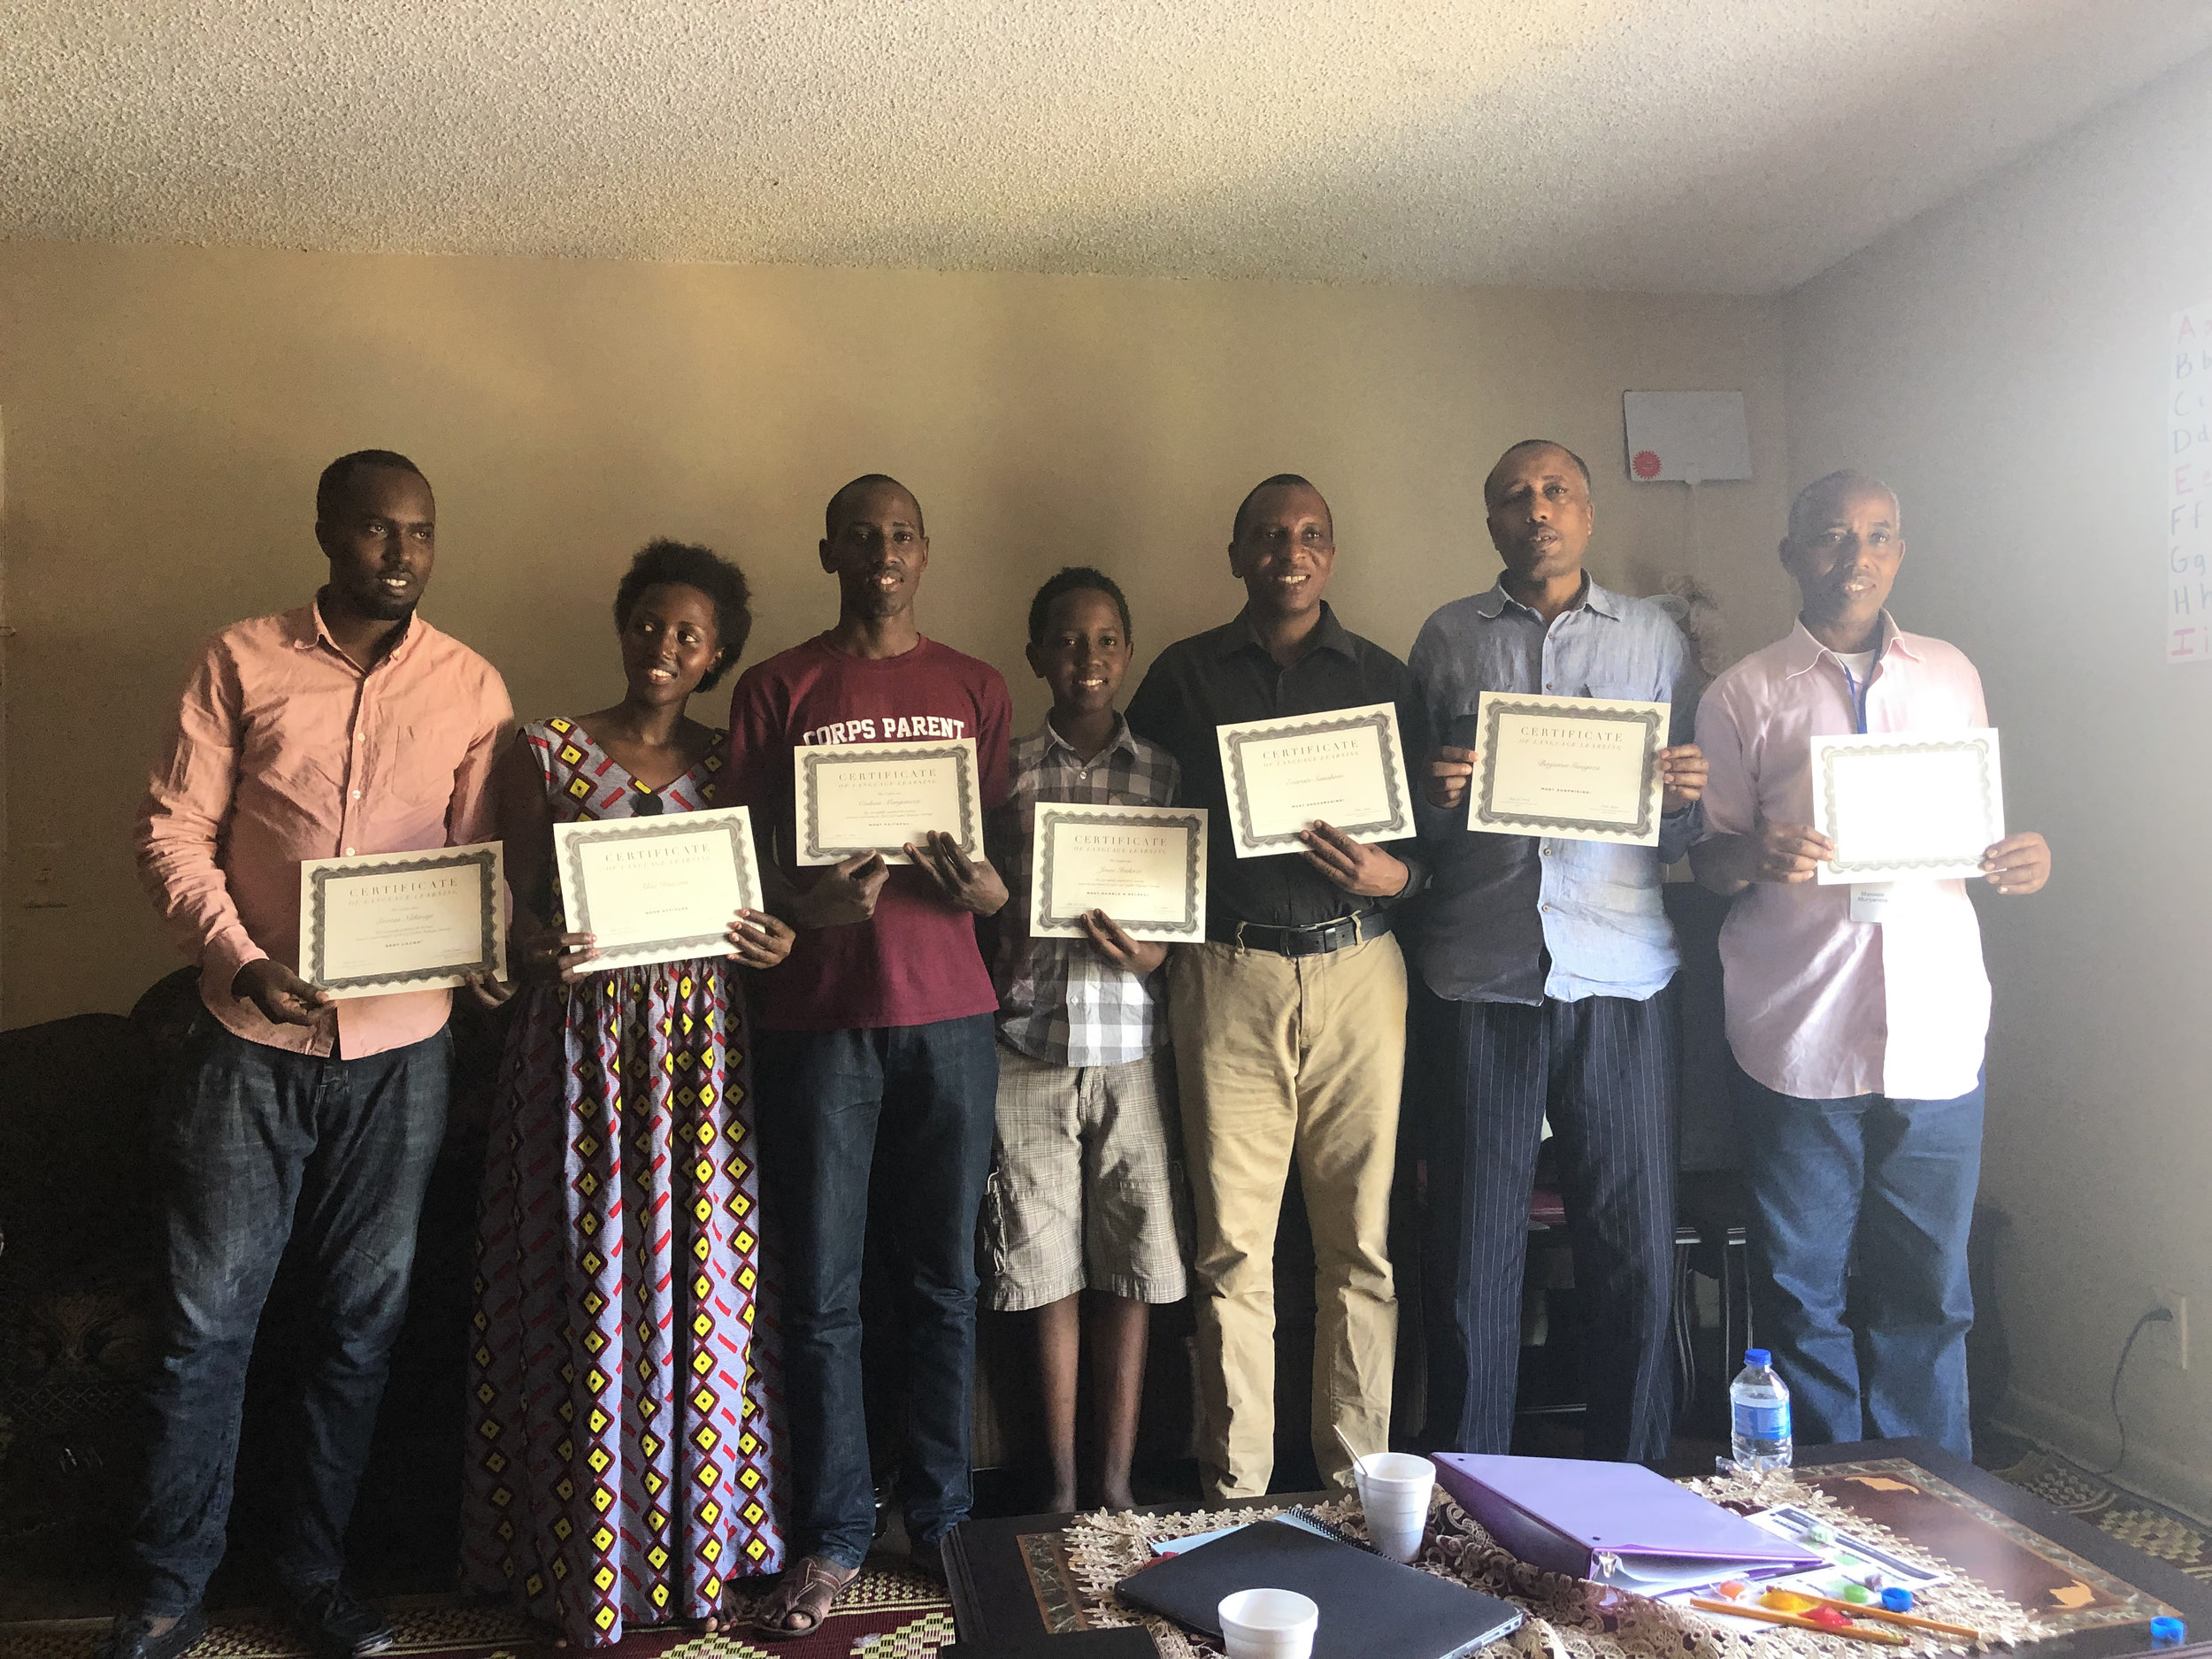 Our refugee friends who have completed two seven-week cycles of English Language Learning. These classes are vital to their integration into our society and we are so happy to provide the service to our neighbors.